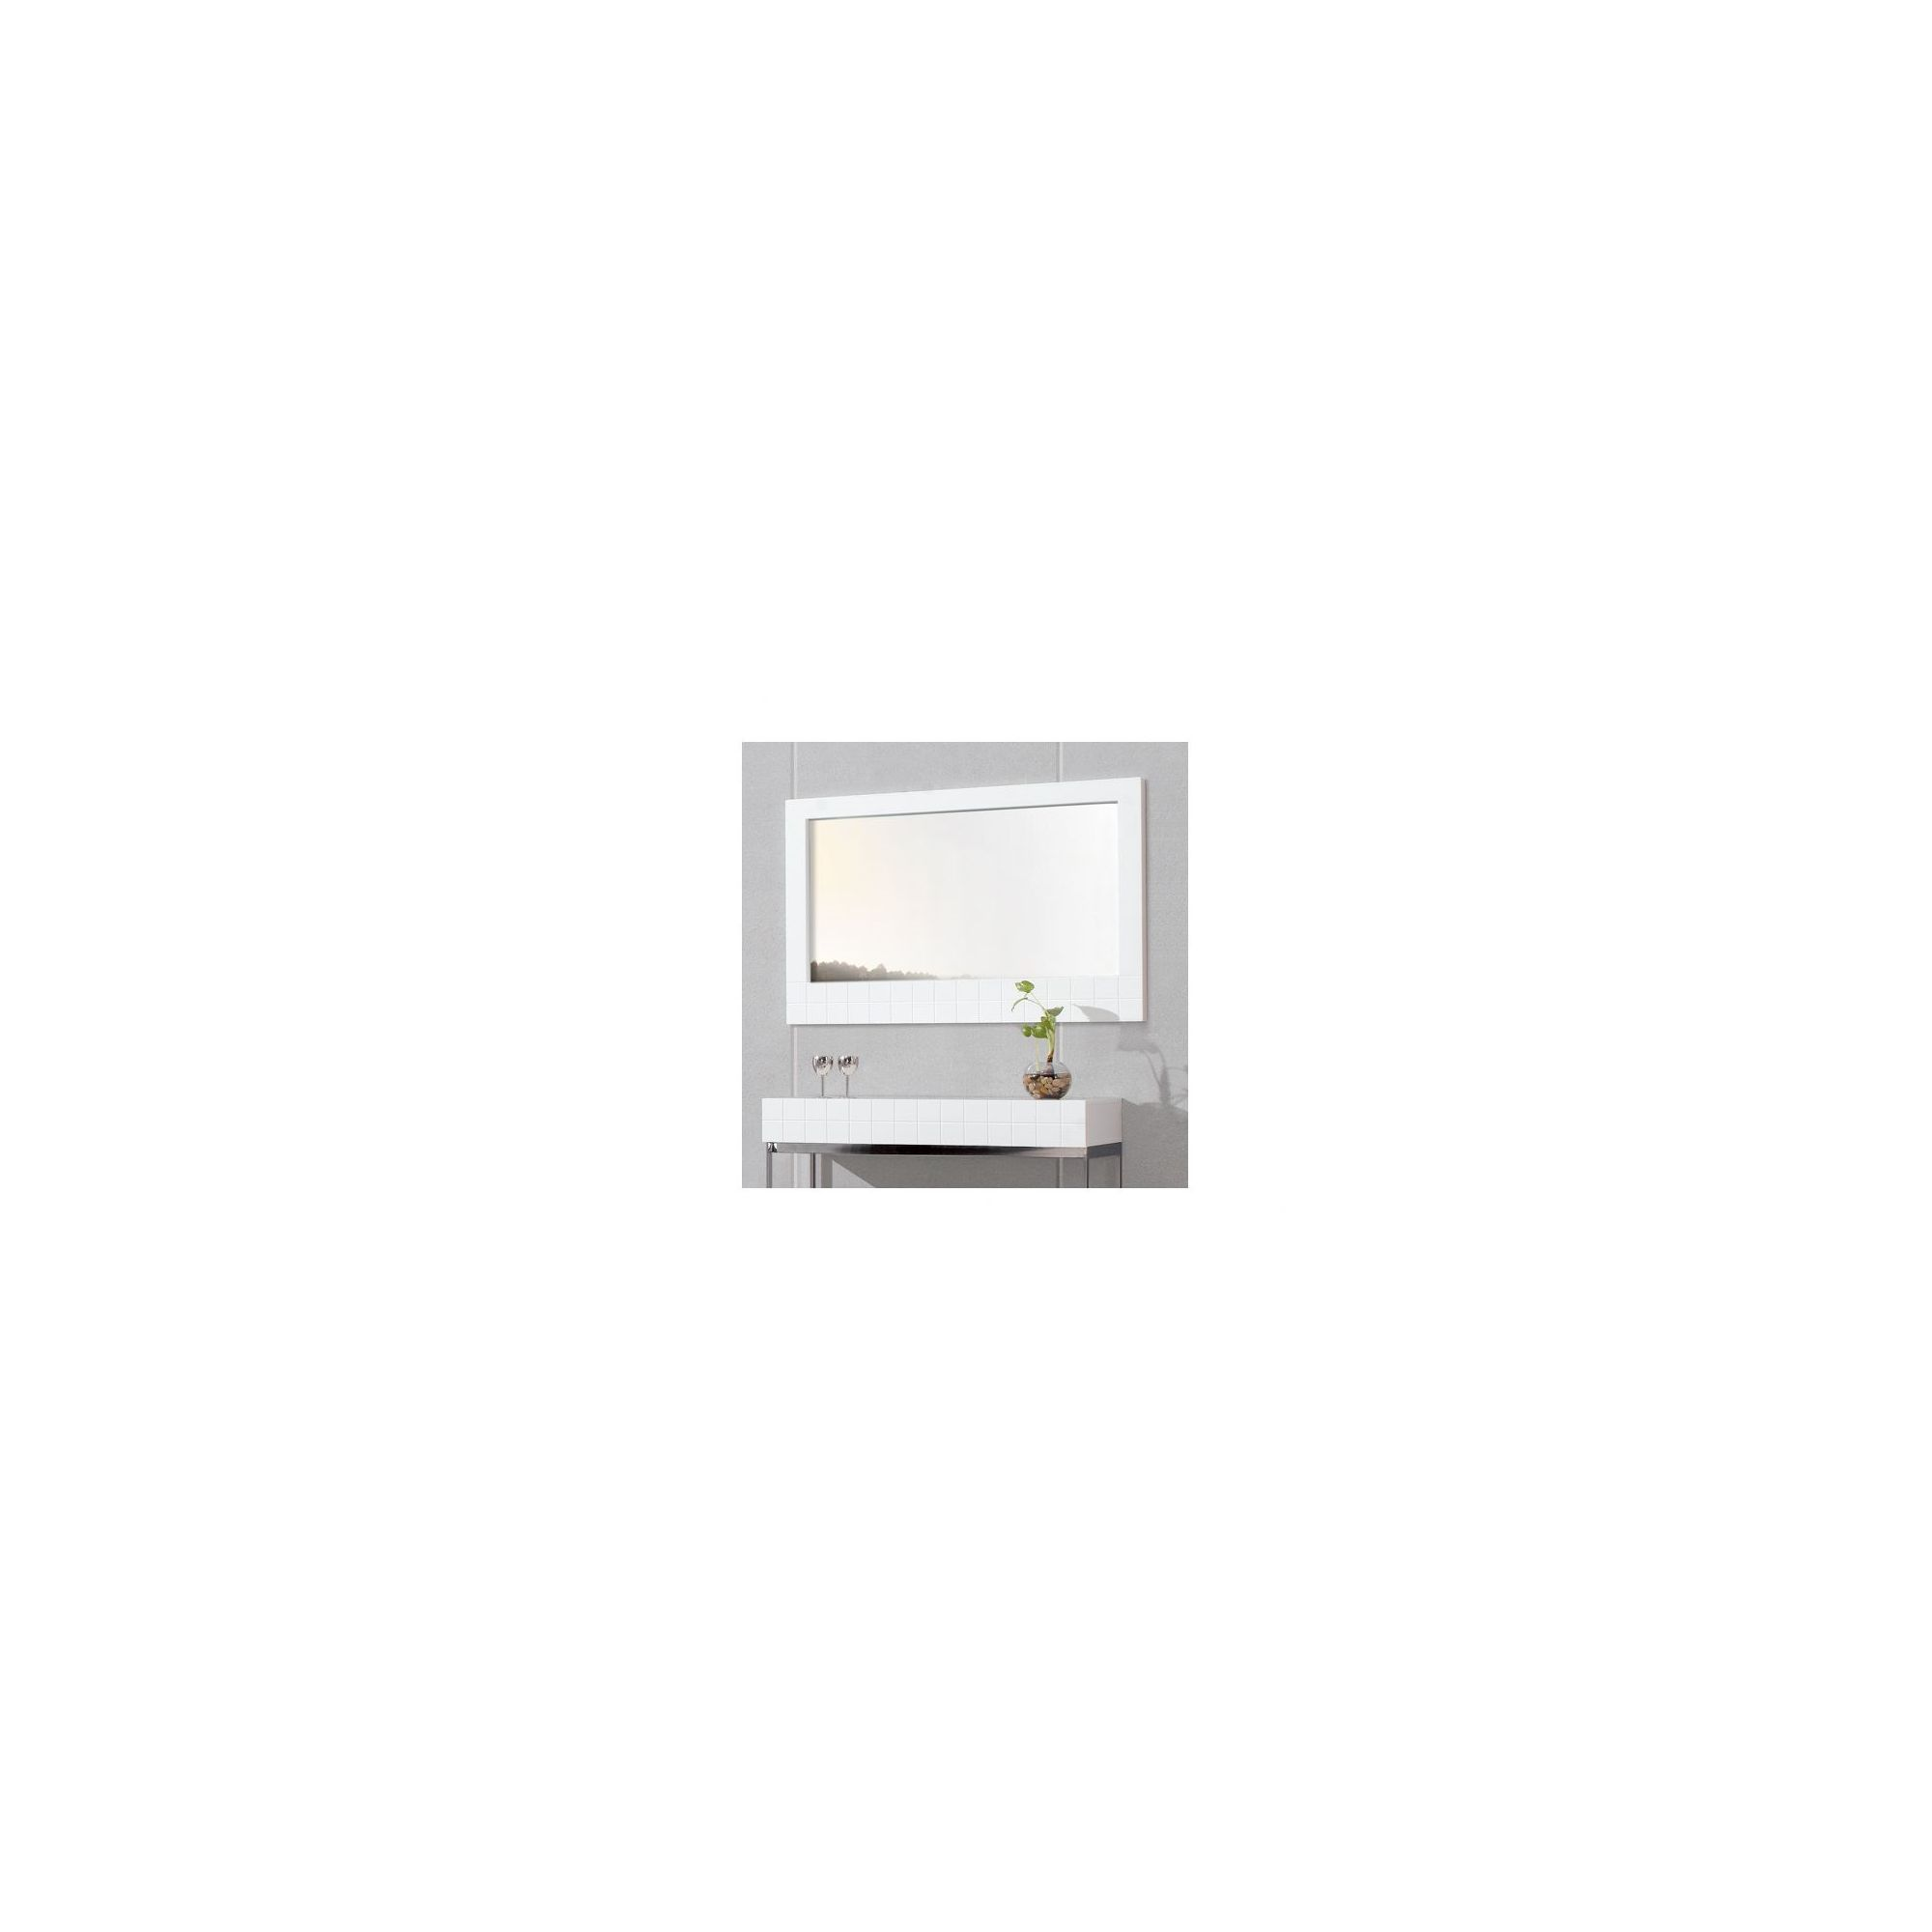 Gillmore Space Barcelona Wall Hanging Mirror - 5.5cm H x 105cm W x 73cm D - White Lacquer (Matt) at Tesco Direct